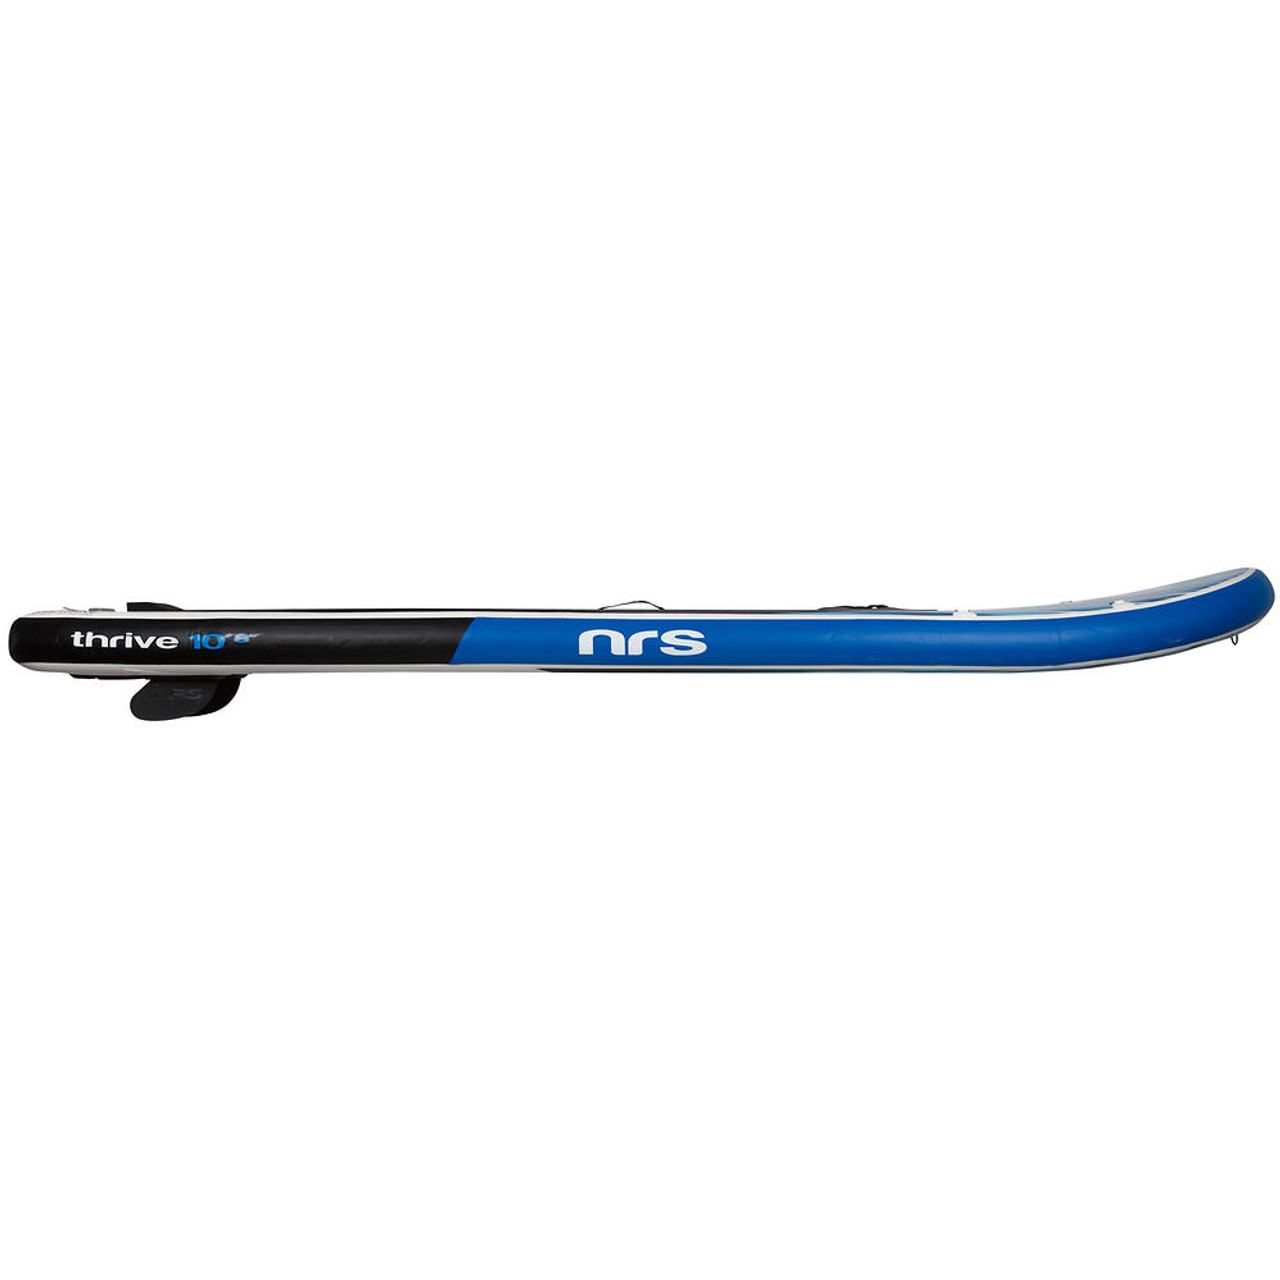 "NRS Thrive 10'8"" Inflatable SUP Board"